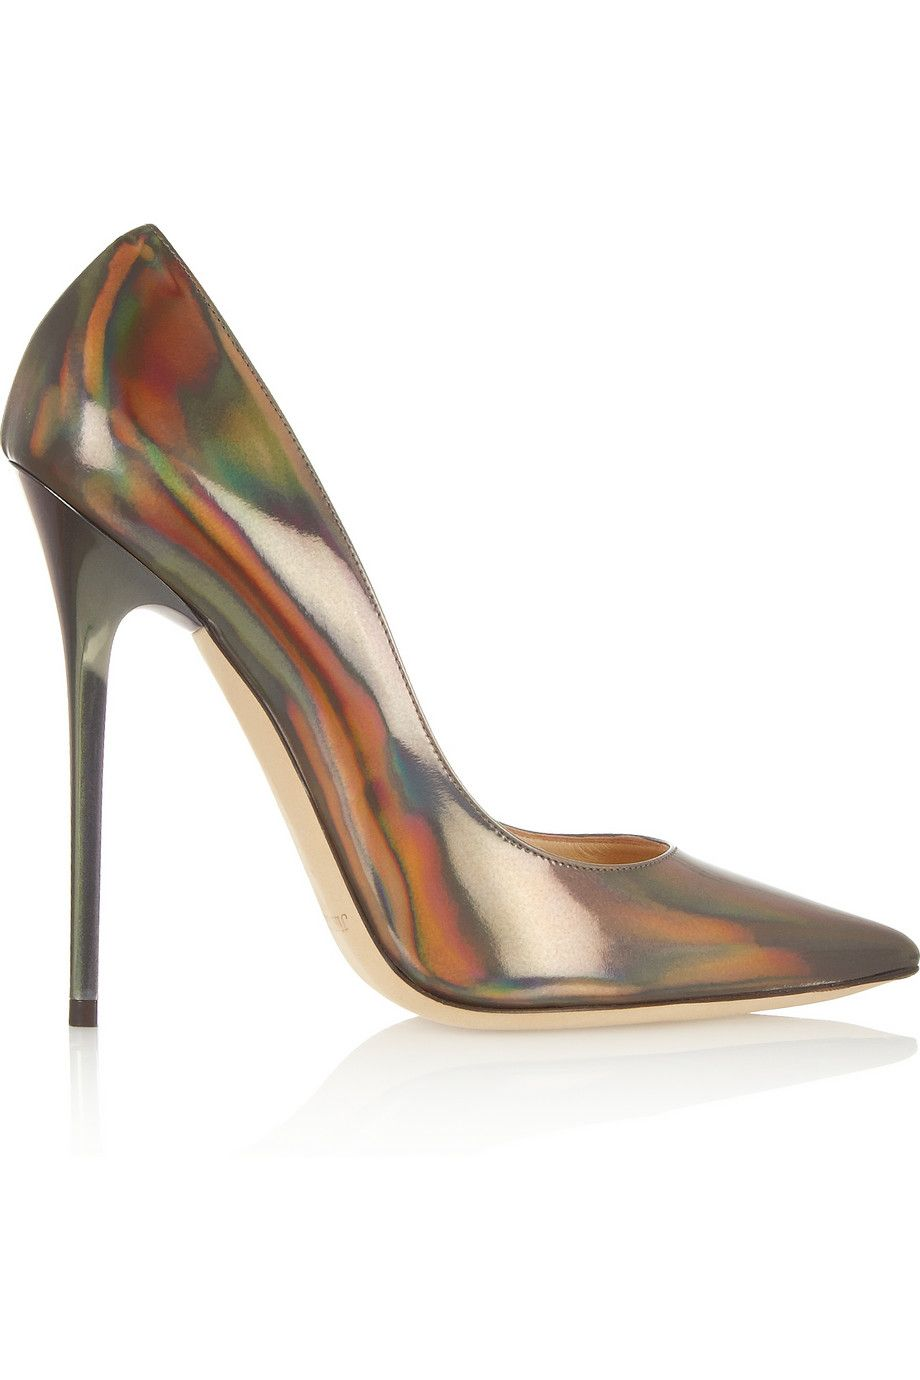 Jimmy Choo Holographic Leather Pumps Shoes Amp Purses